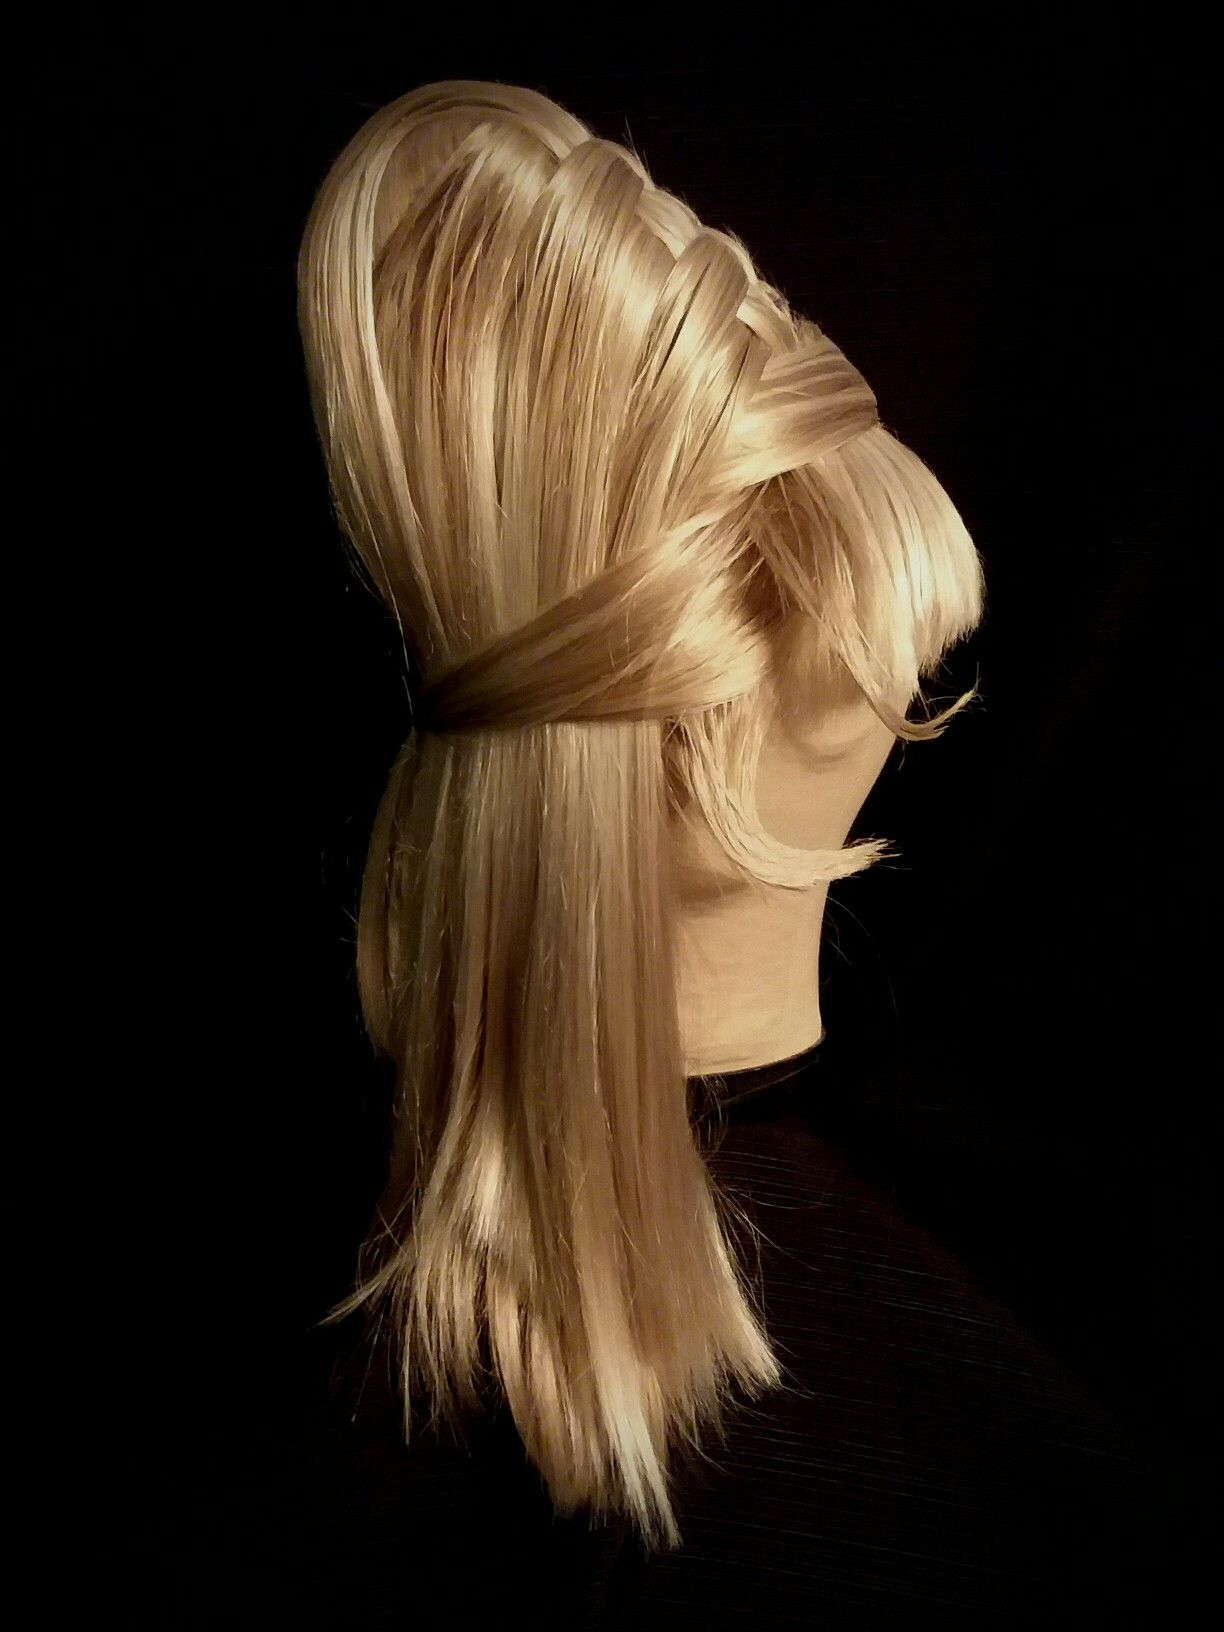 Star Trek The Original Series Yeoman Janice Rand Blonde Beehive Wig